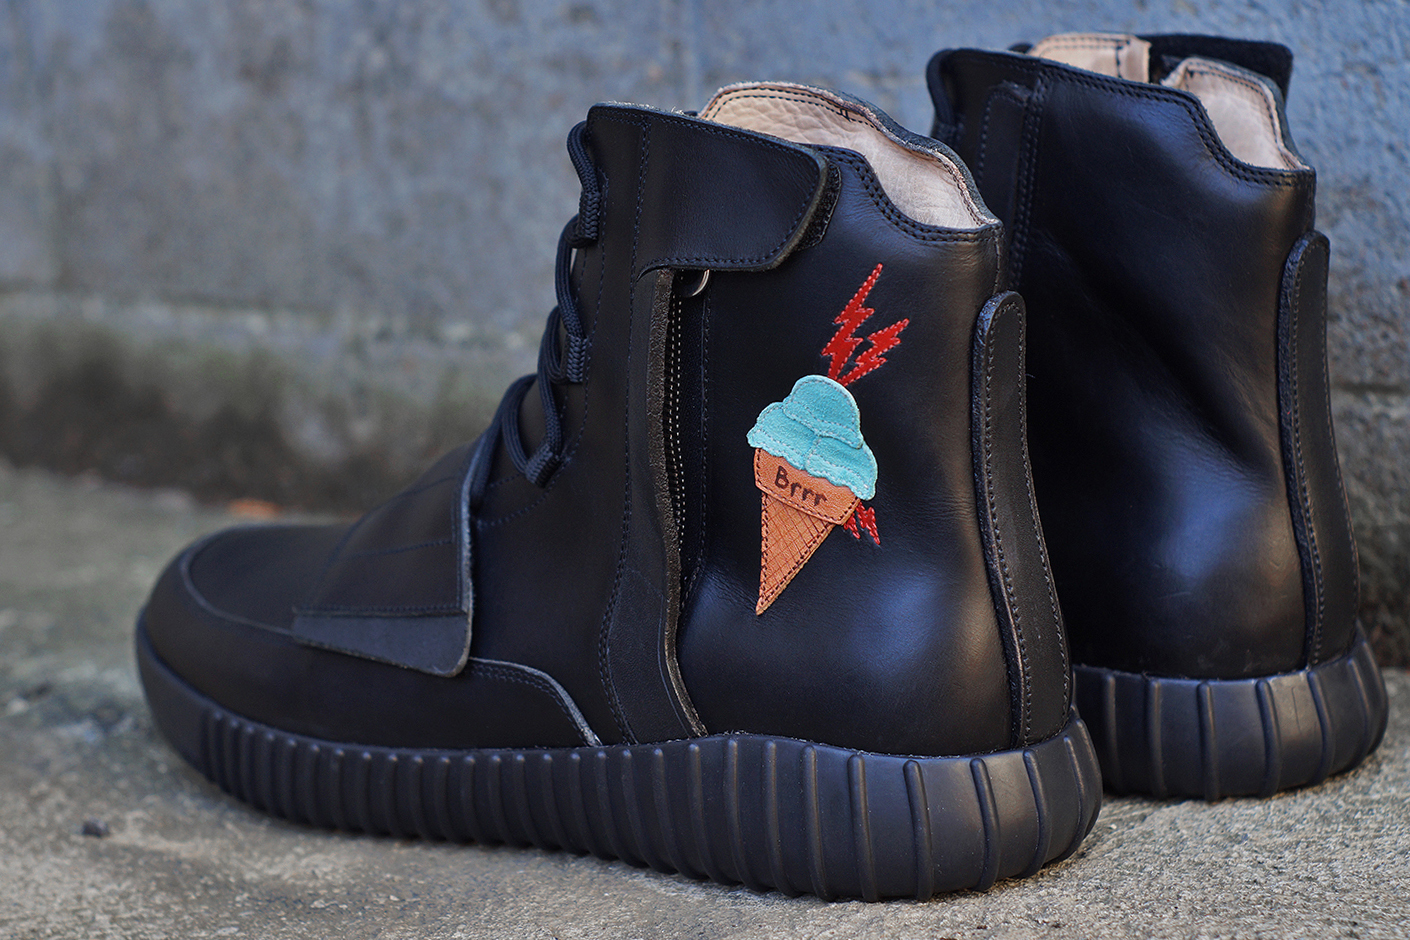 3561bebec32 JBF Customs Yeezy BOOST 750 Ice Cream Decor Gucci Mane Black Leather Water  Resistance Veg Tanned